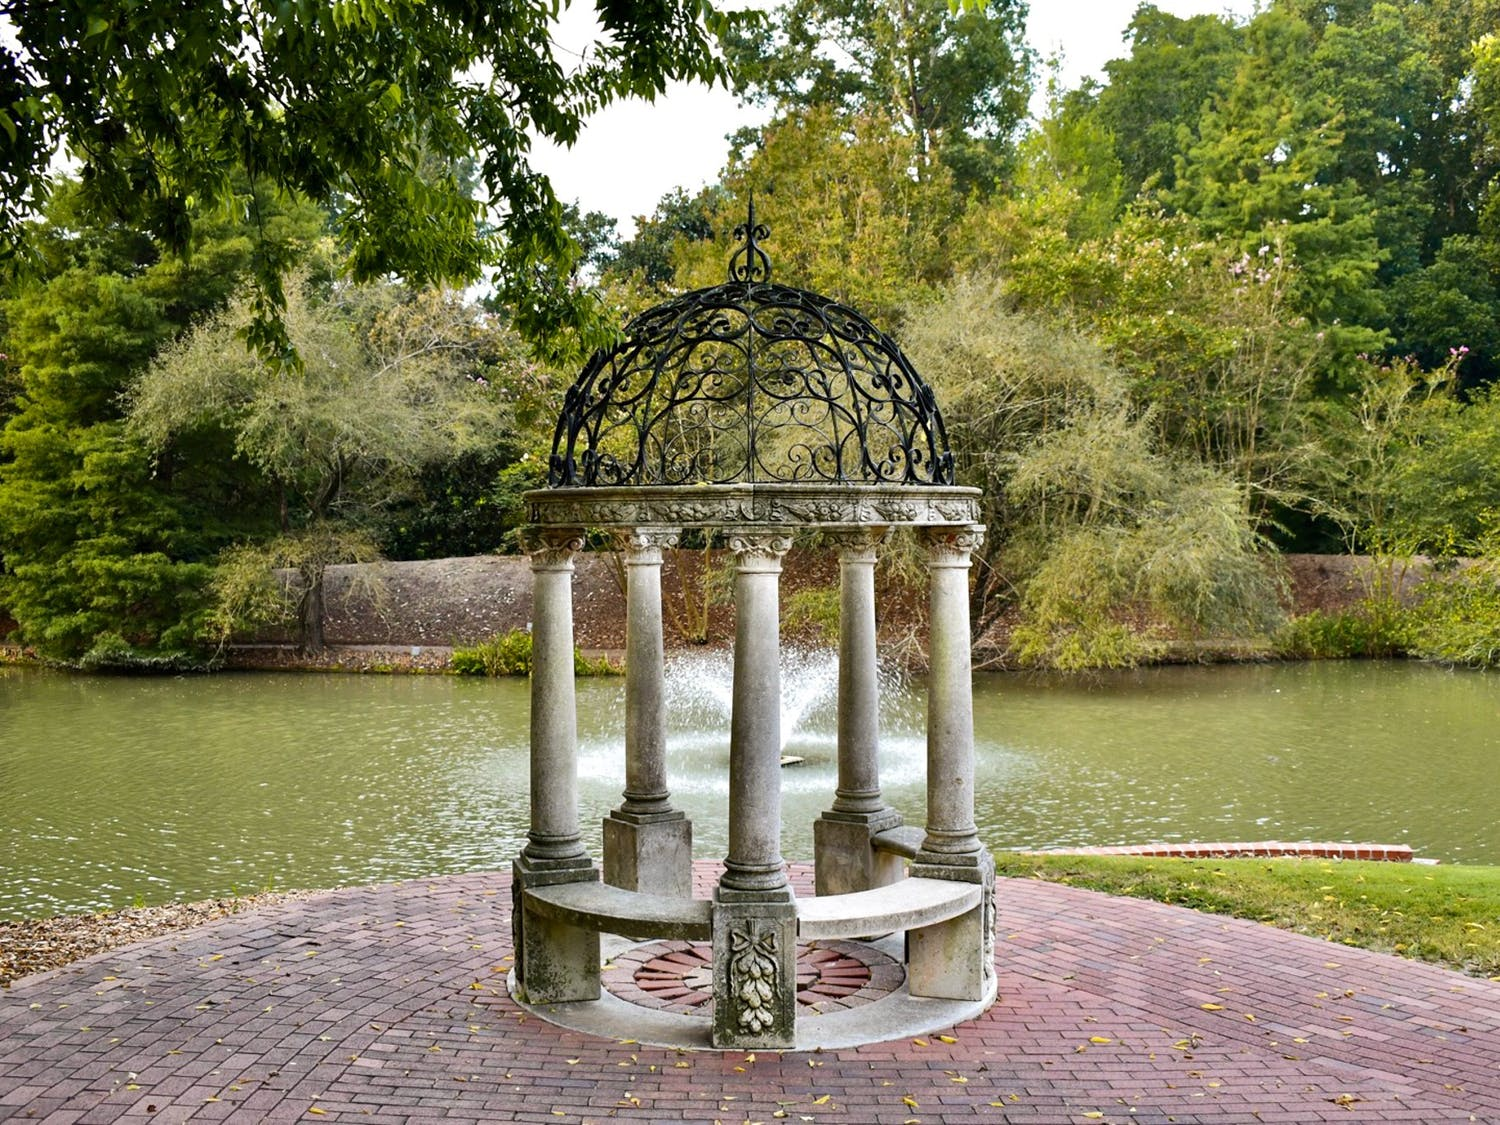 """One of the many fountains at Hopelands Gardens. Hopelands Gardens is a sprawling landmark in Aiken with wildlife, ponds, gazebos, a performing arts stage and a """"turtle island"""" that aims to preserve the natural landscape."""